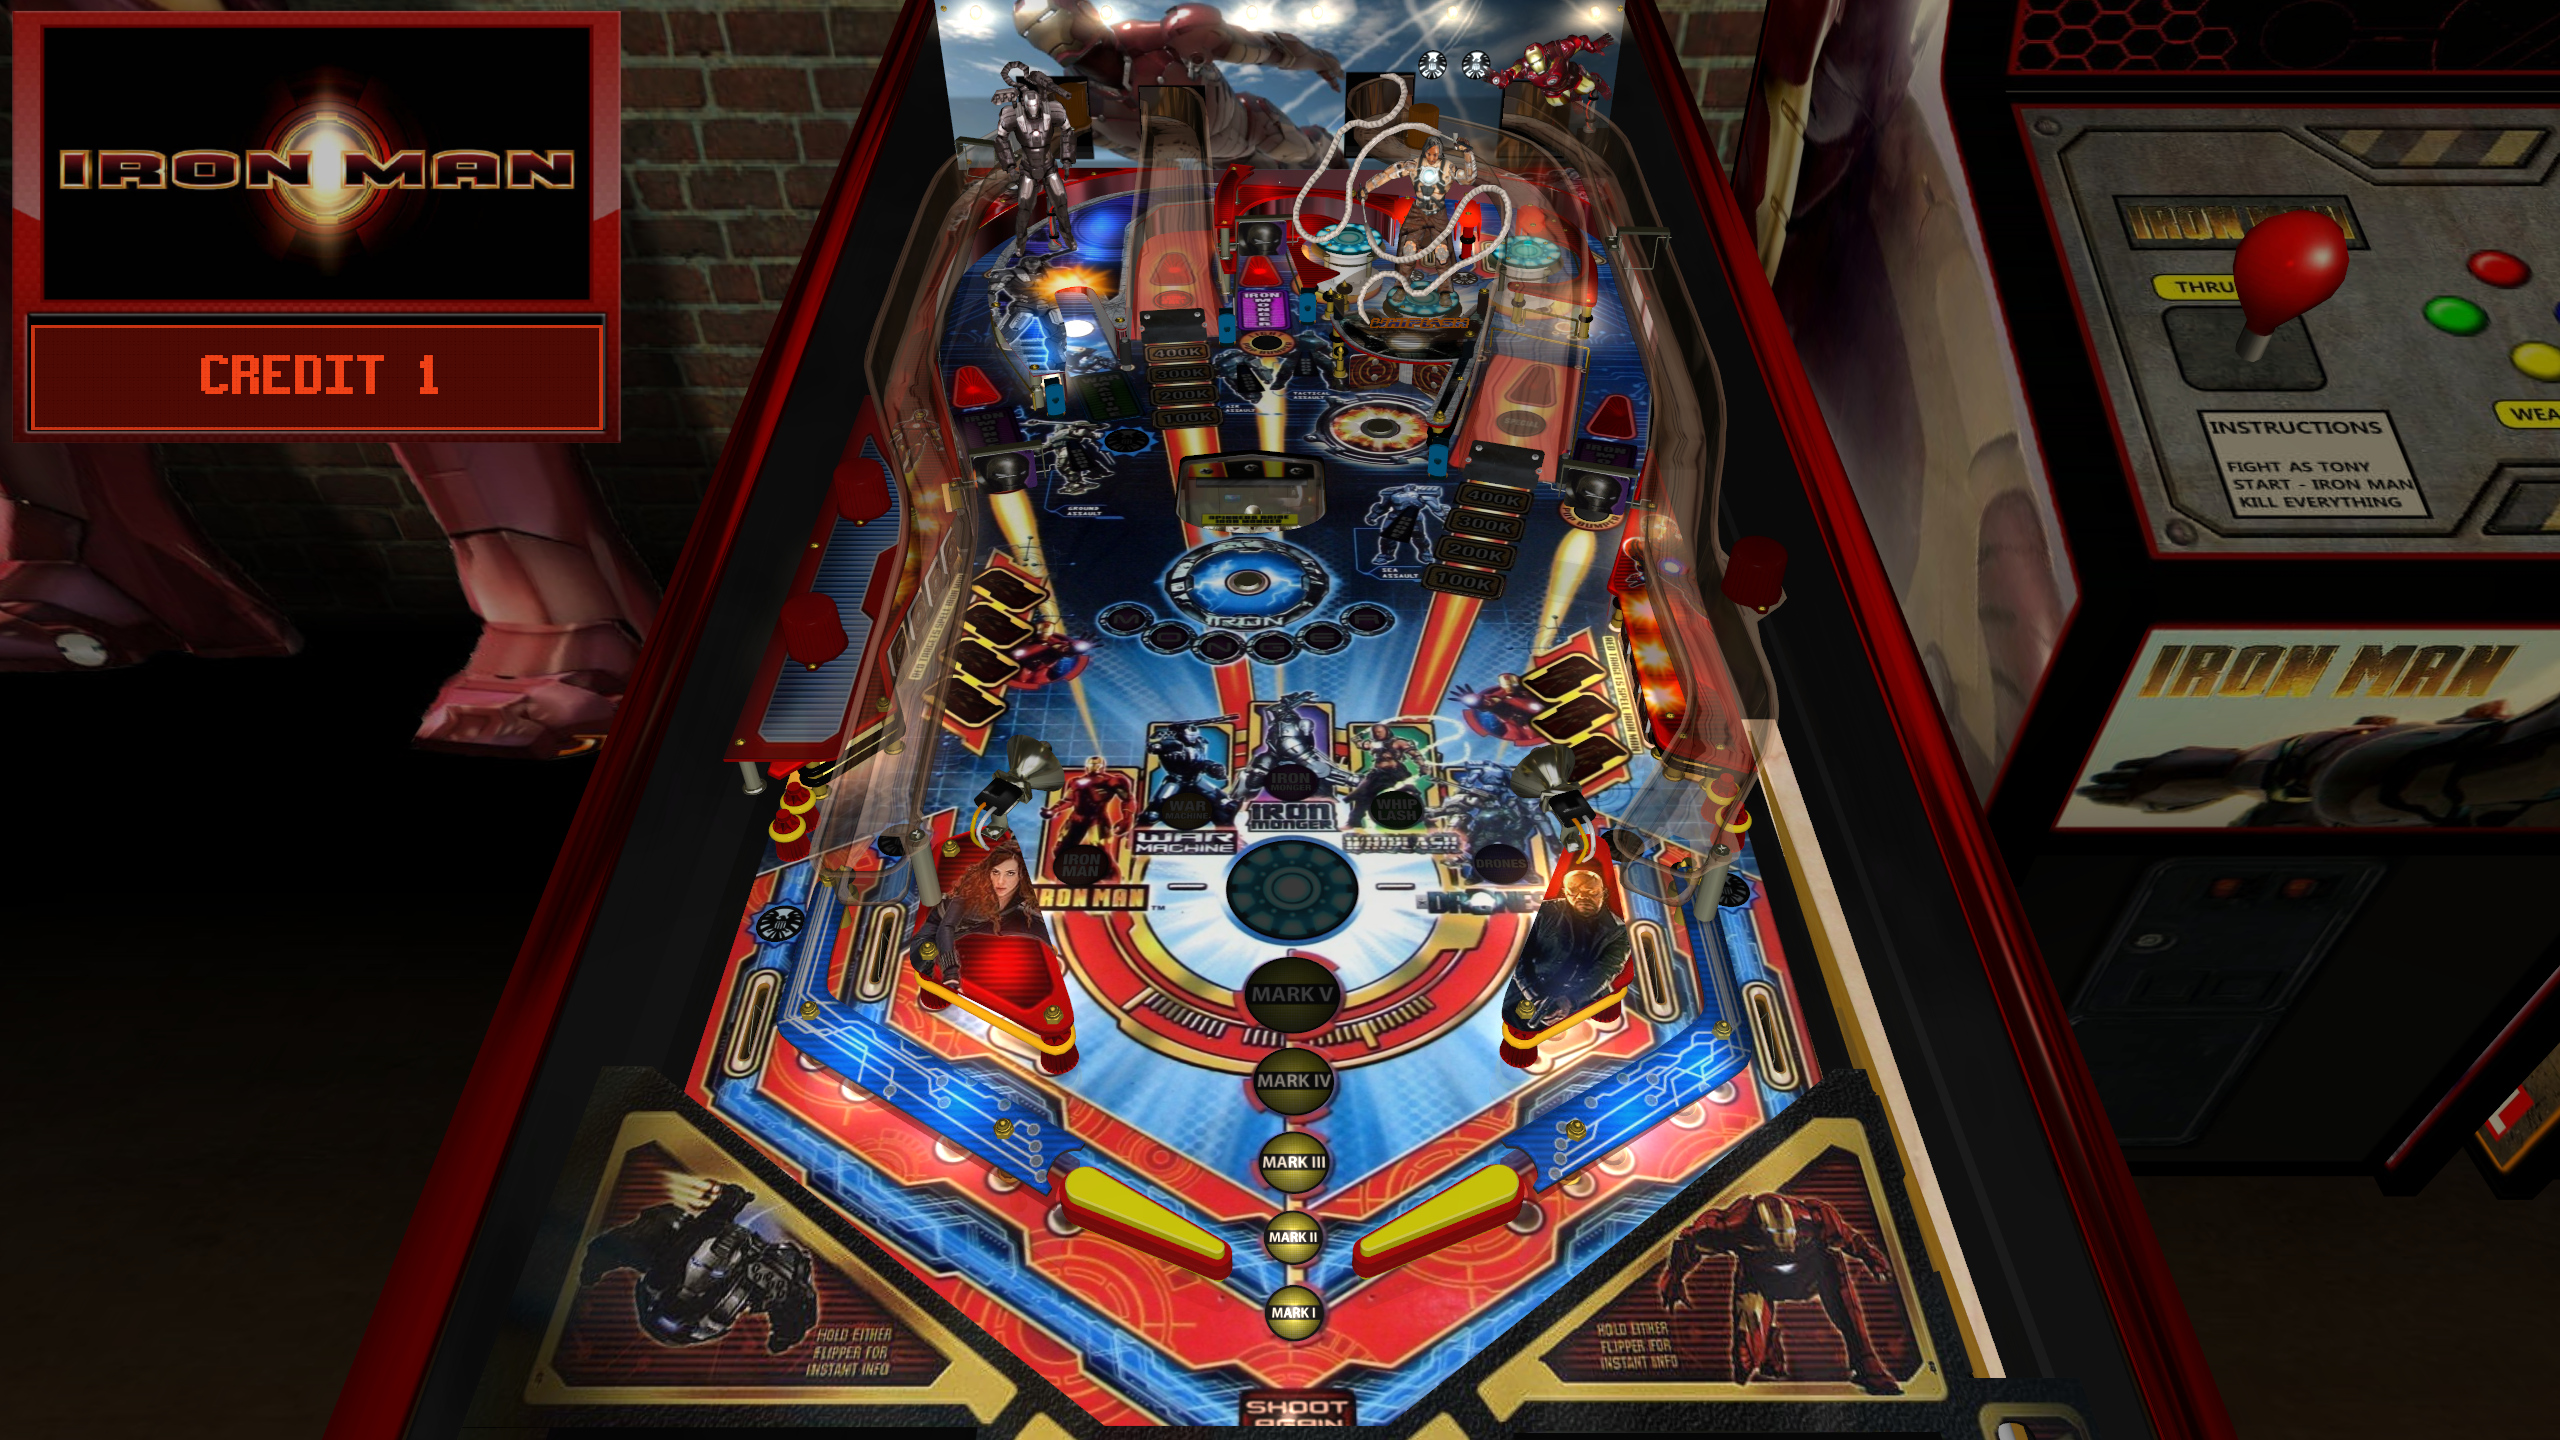 Playfield, Day Version